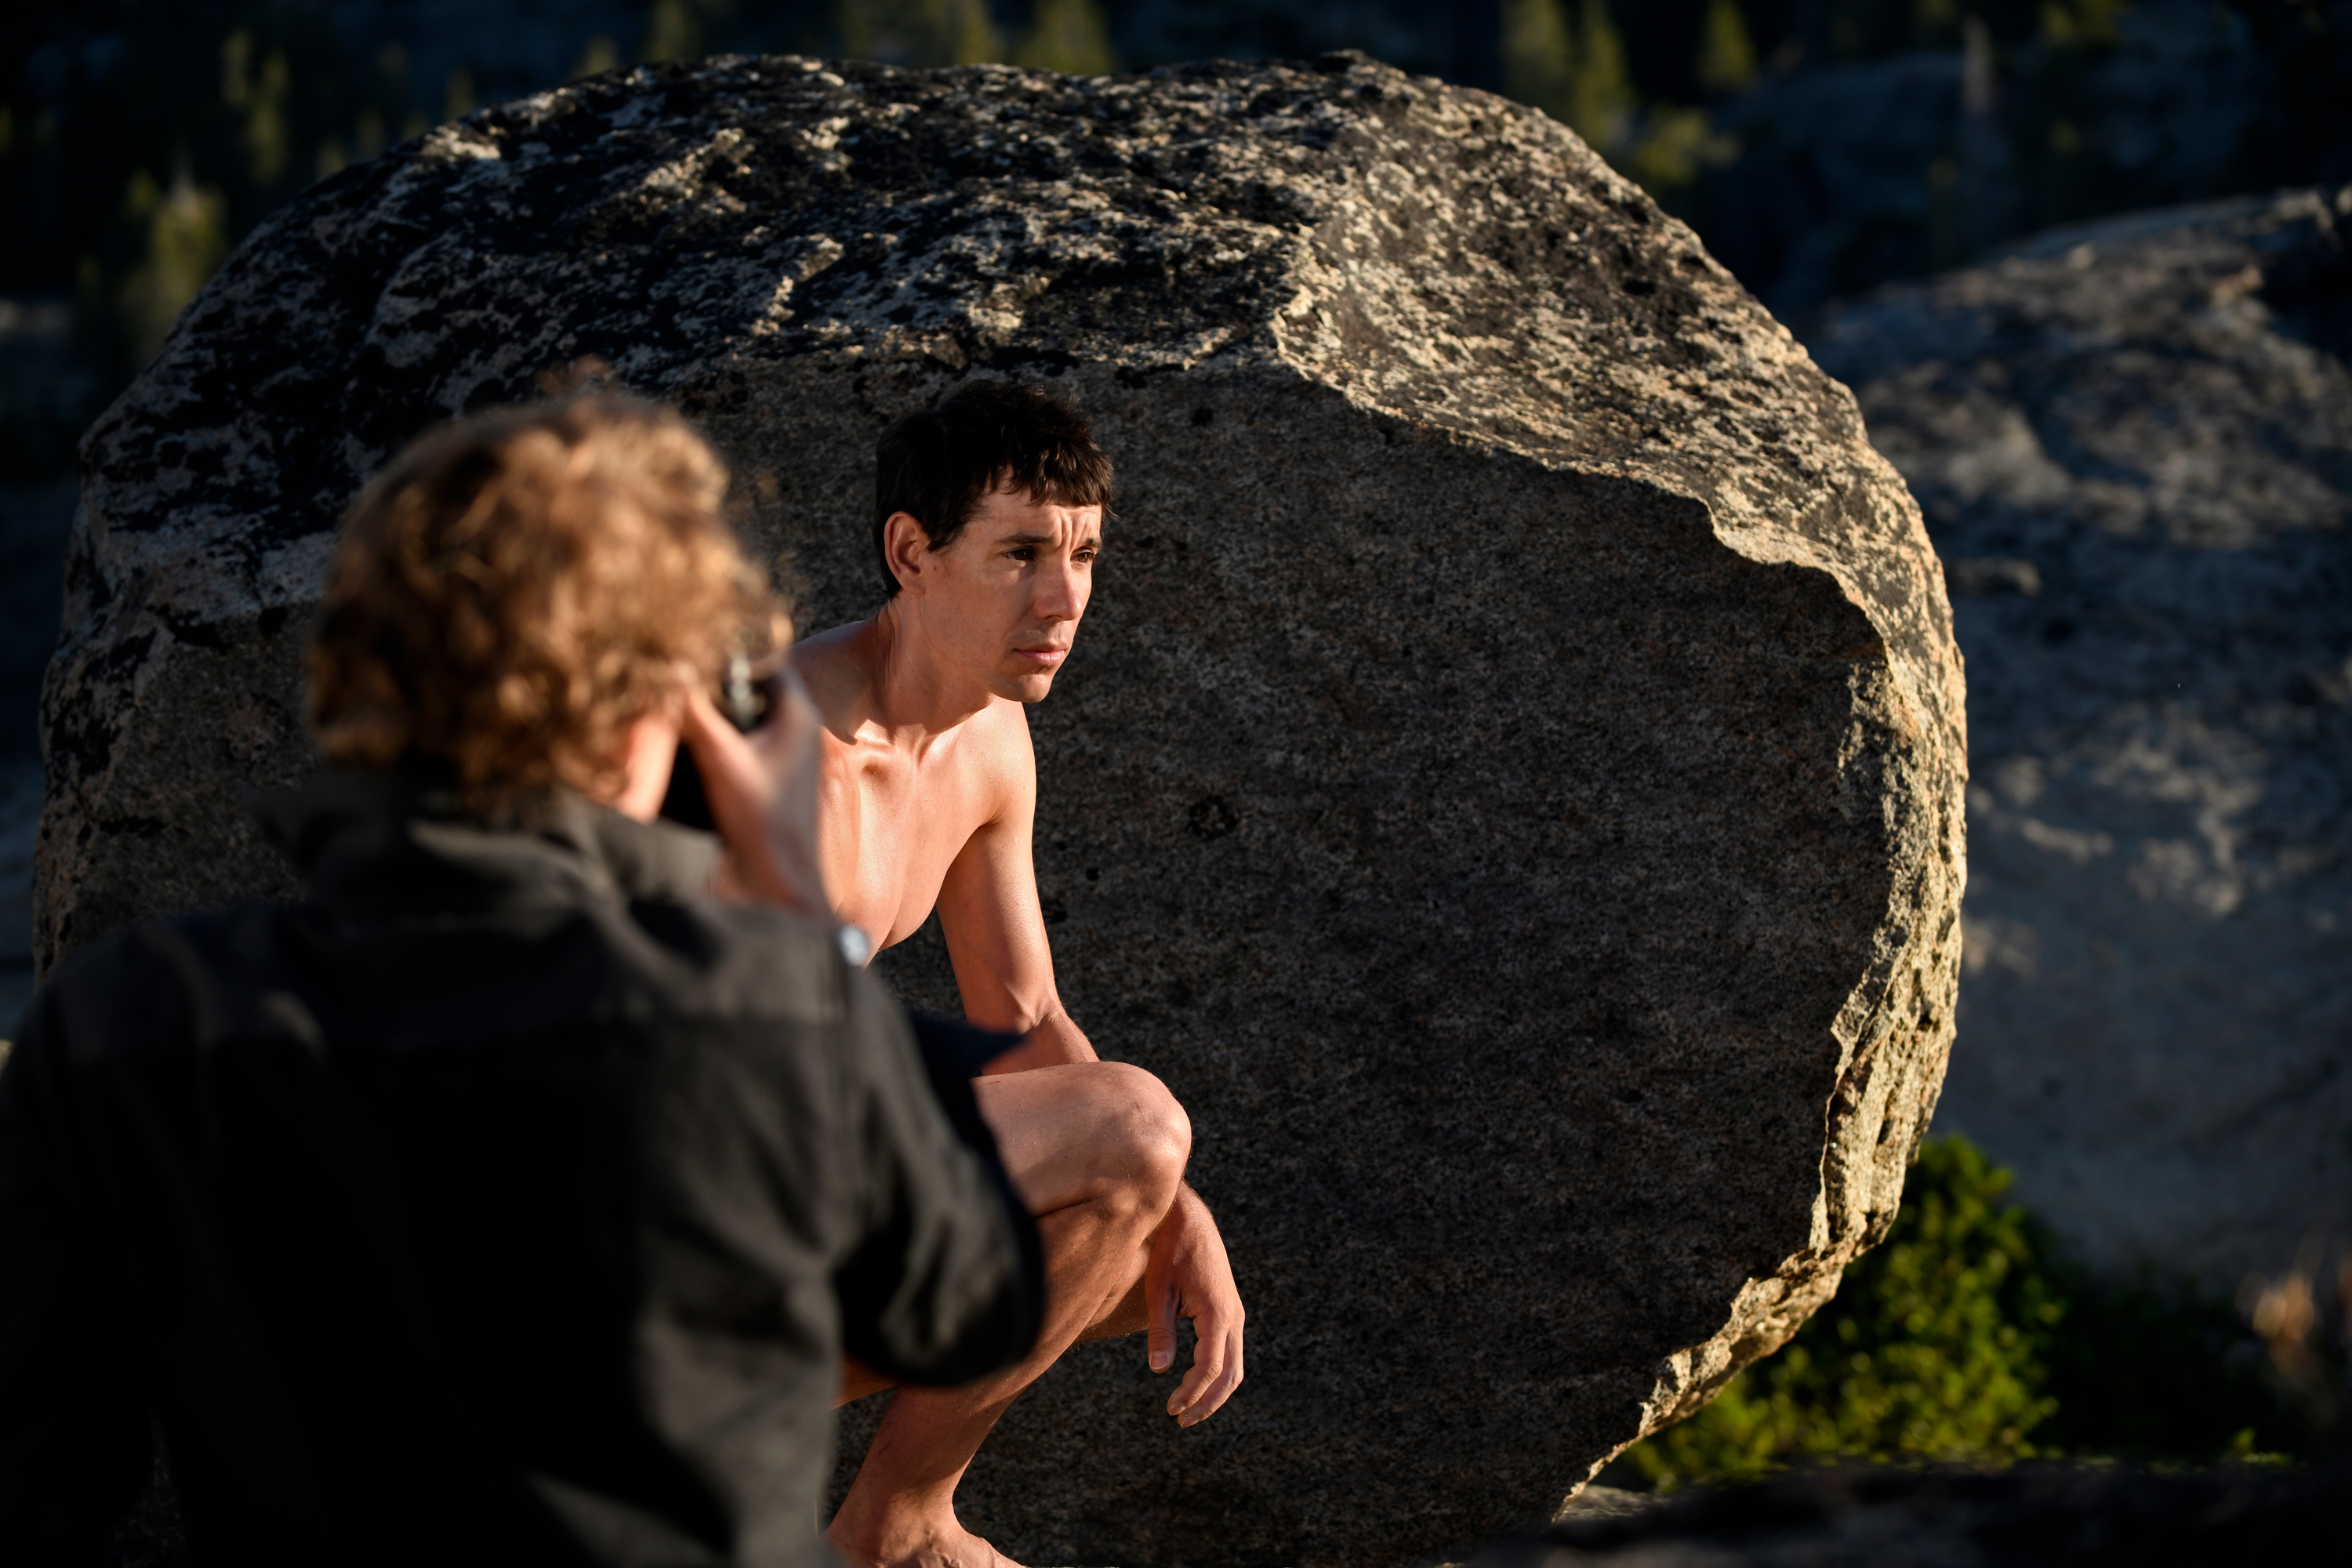 Cory Richards photographing Alex Honnold for the 2019 ESPN Body Issue.